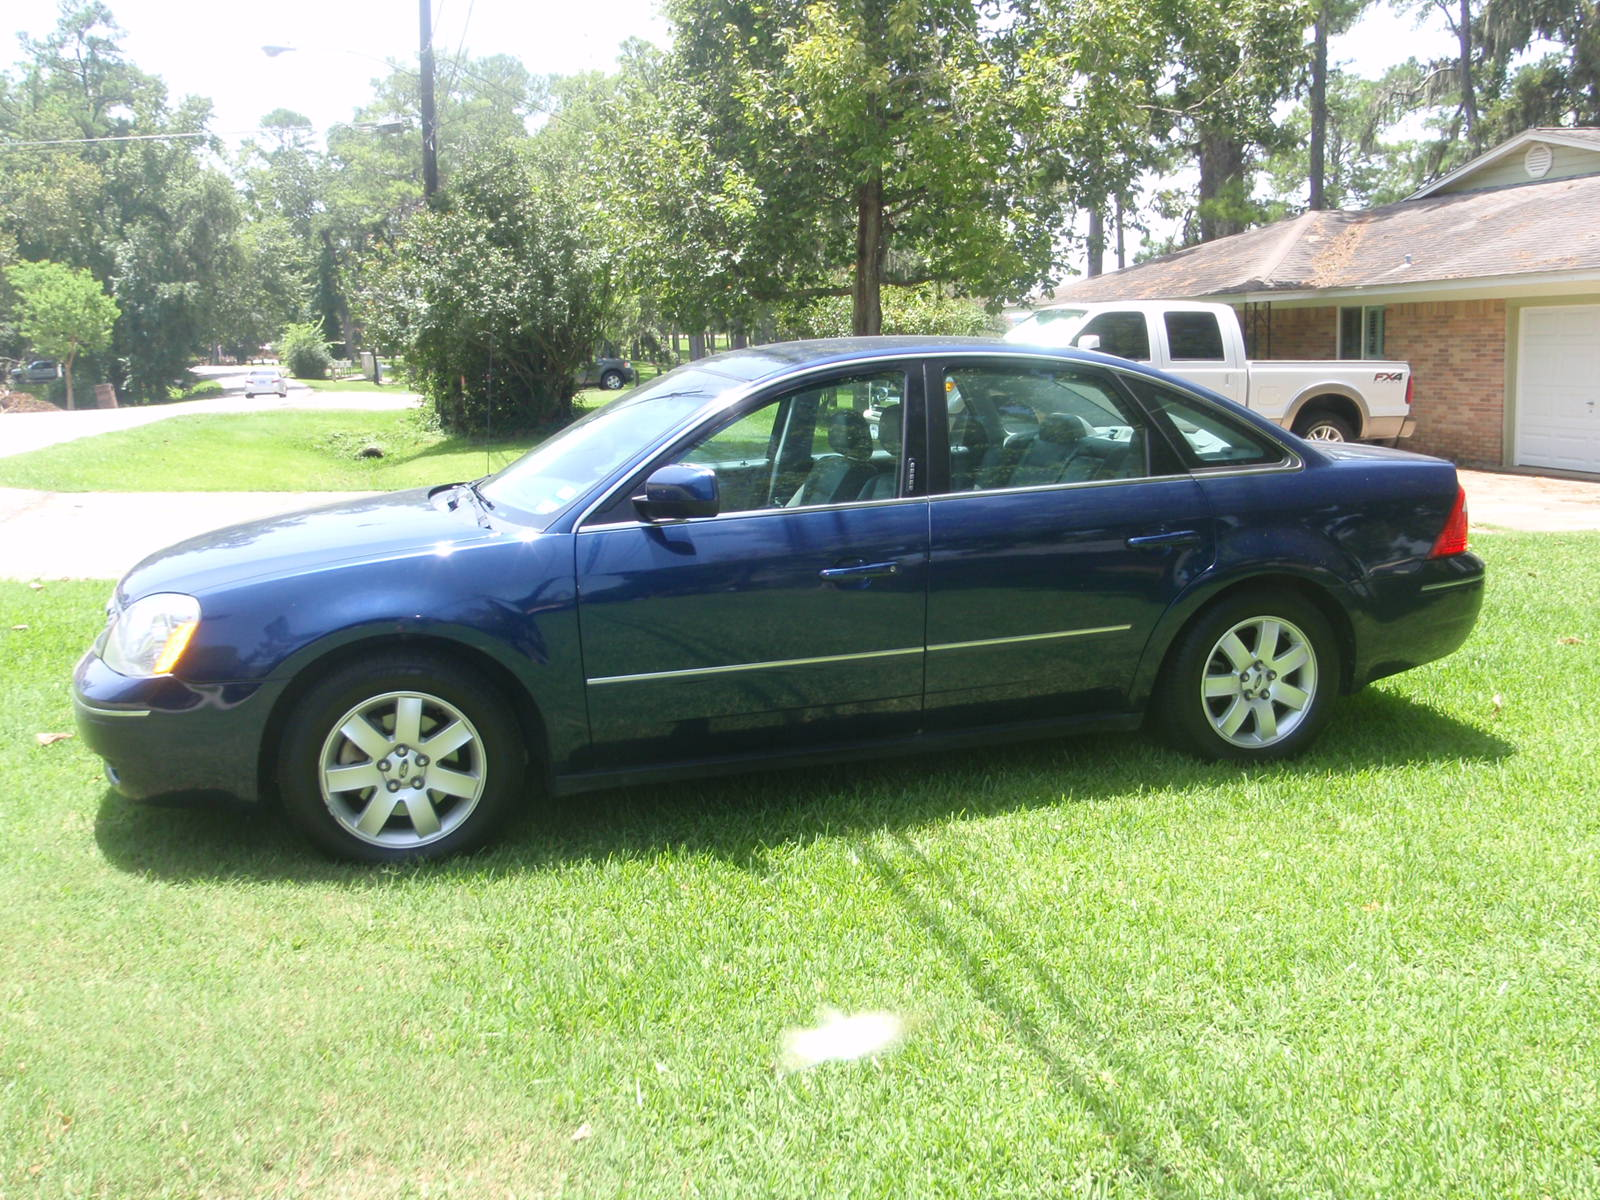 Ford Five Hundred Sel Pic on 2005 Ford Five Hundred Reliability